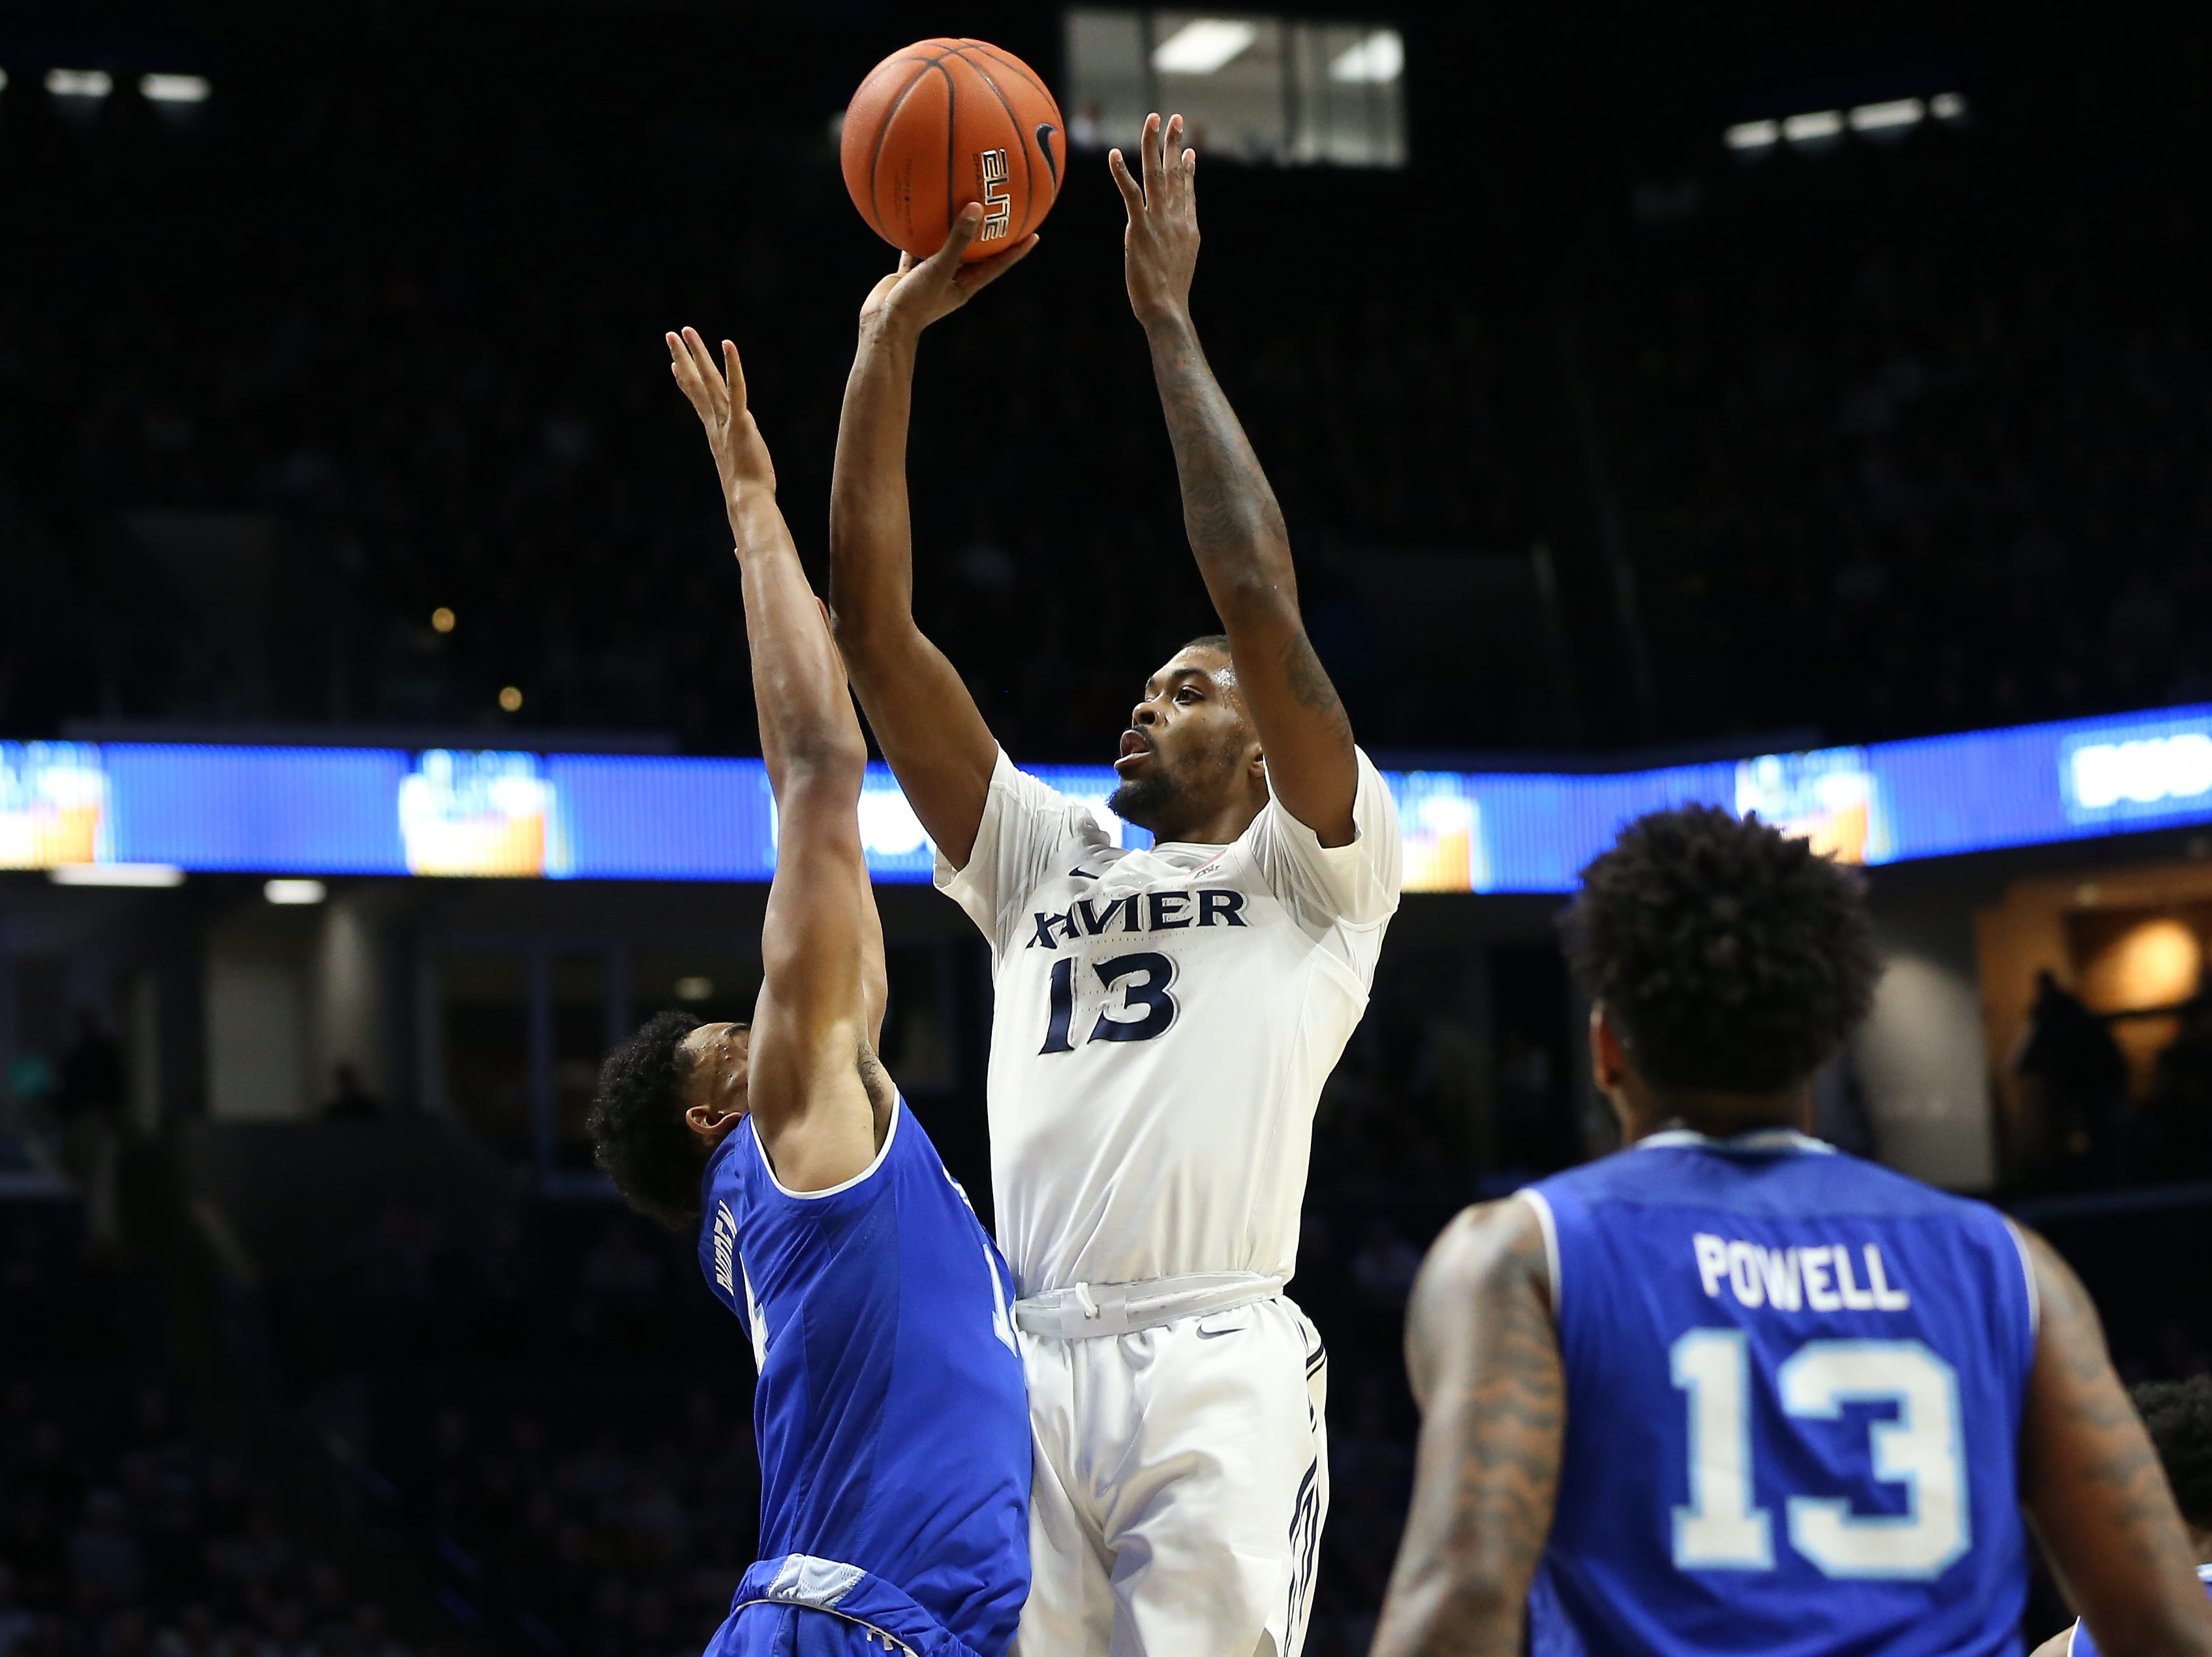 Xavier Musketeers forward Naji Marshall (13) rises for a shot in the first half of an NCAA college basketball game against the Seton Hall Pirates, Wednesday, Jan. 2, 2019, at the Cintas Center in Cincinnati.